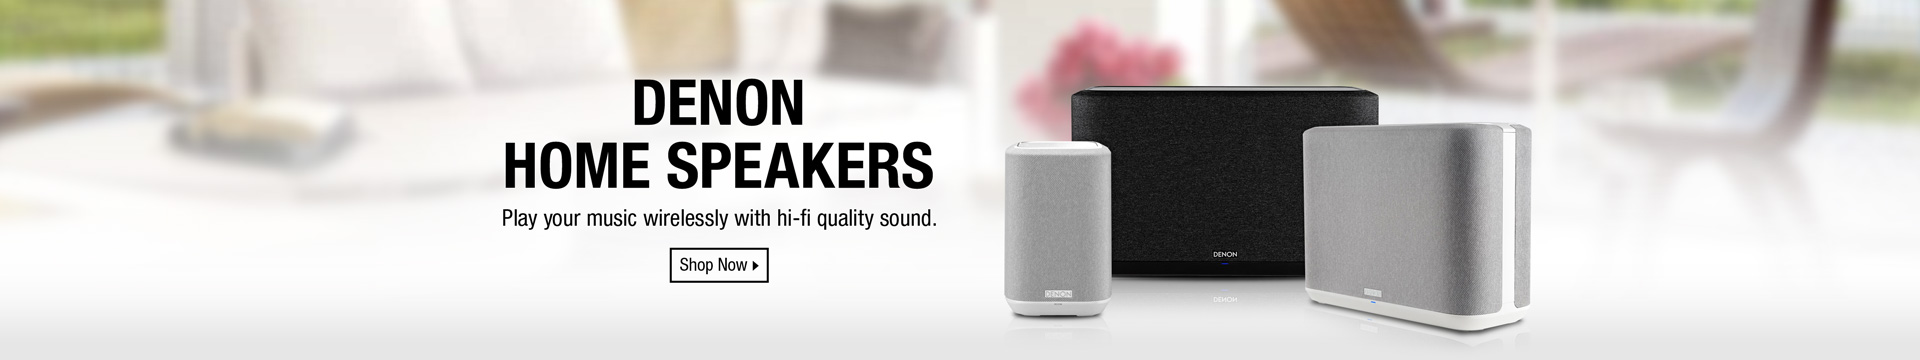 Denon Home Speakers